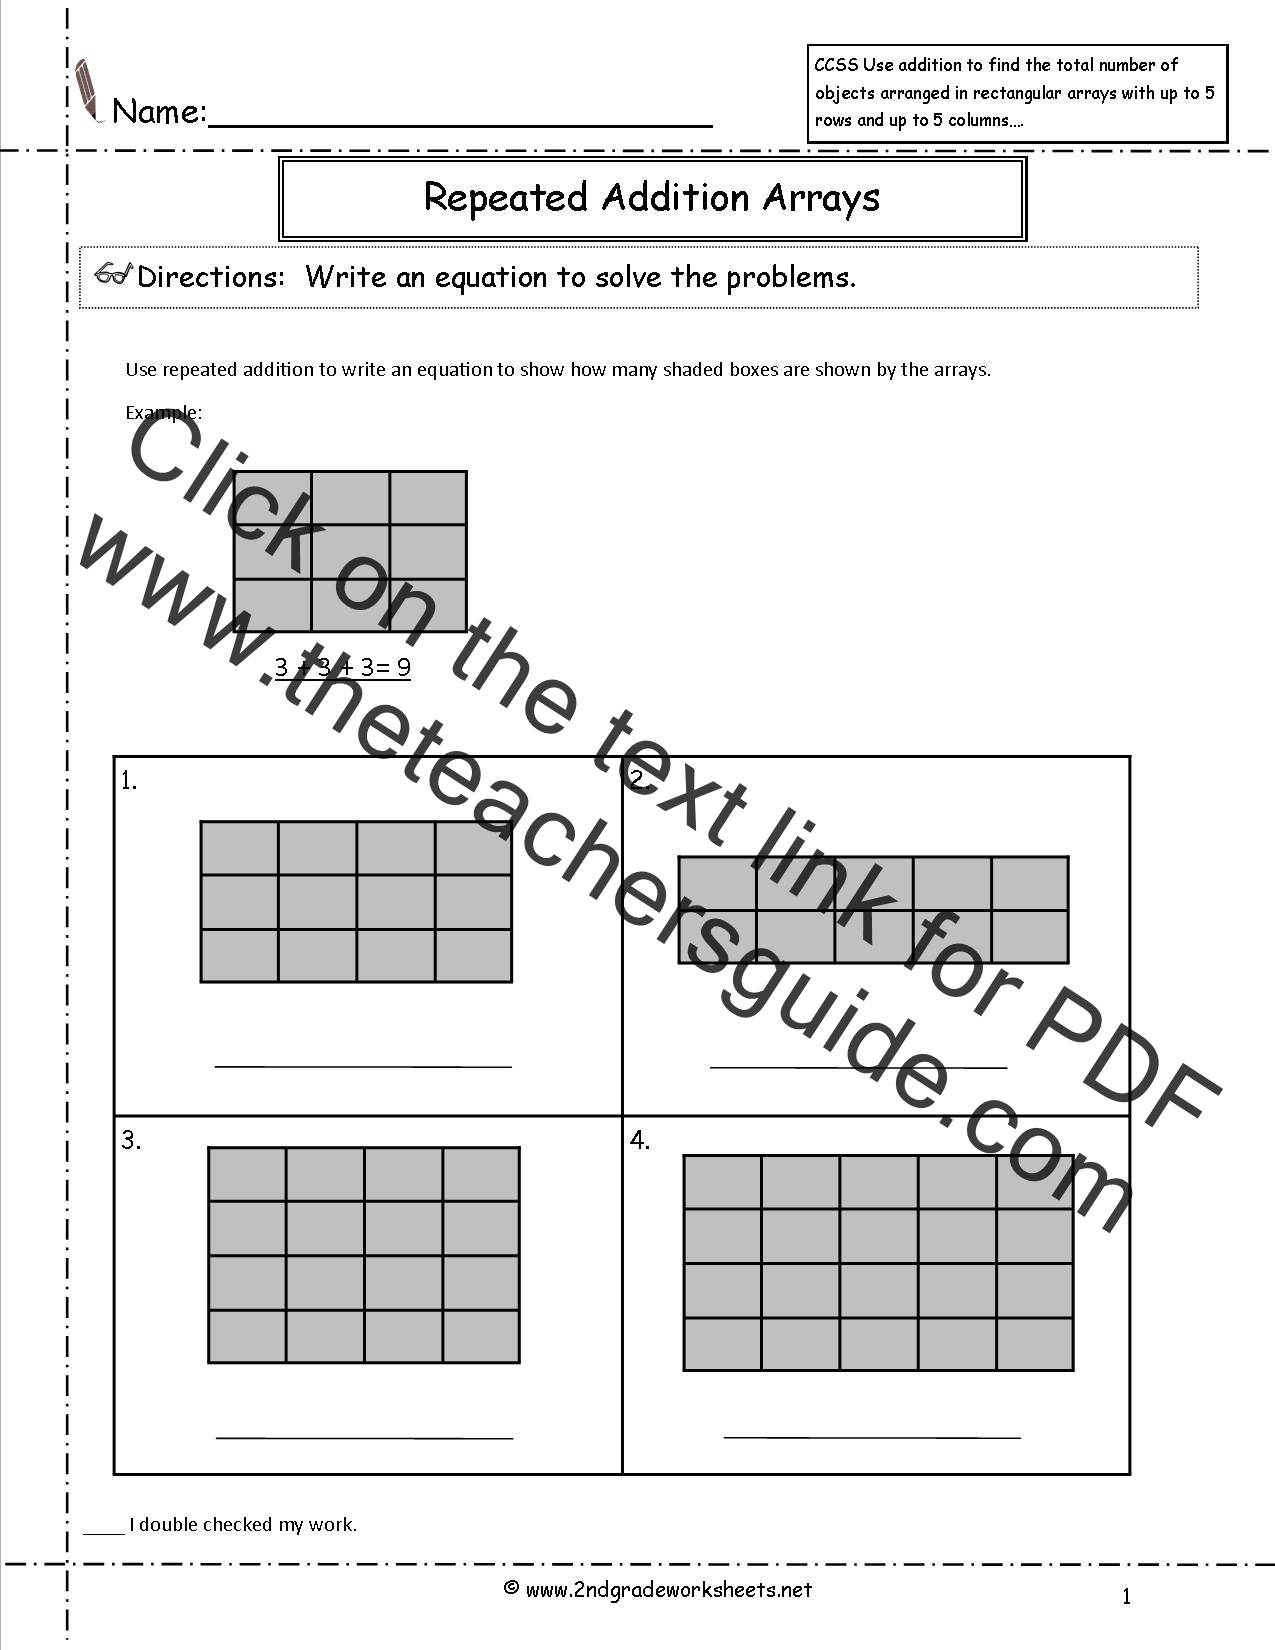 Multiplication As Repeated Addition Worksheet 3Rd Grade Worksheets ...